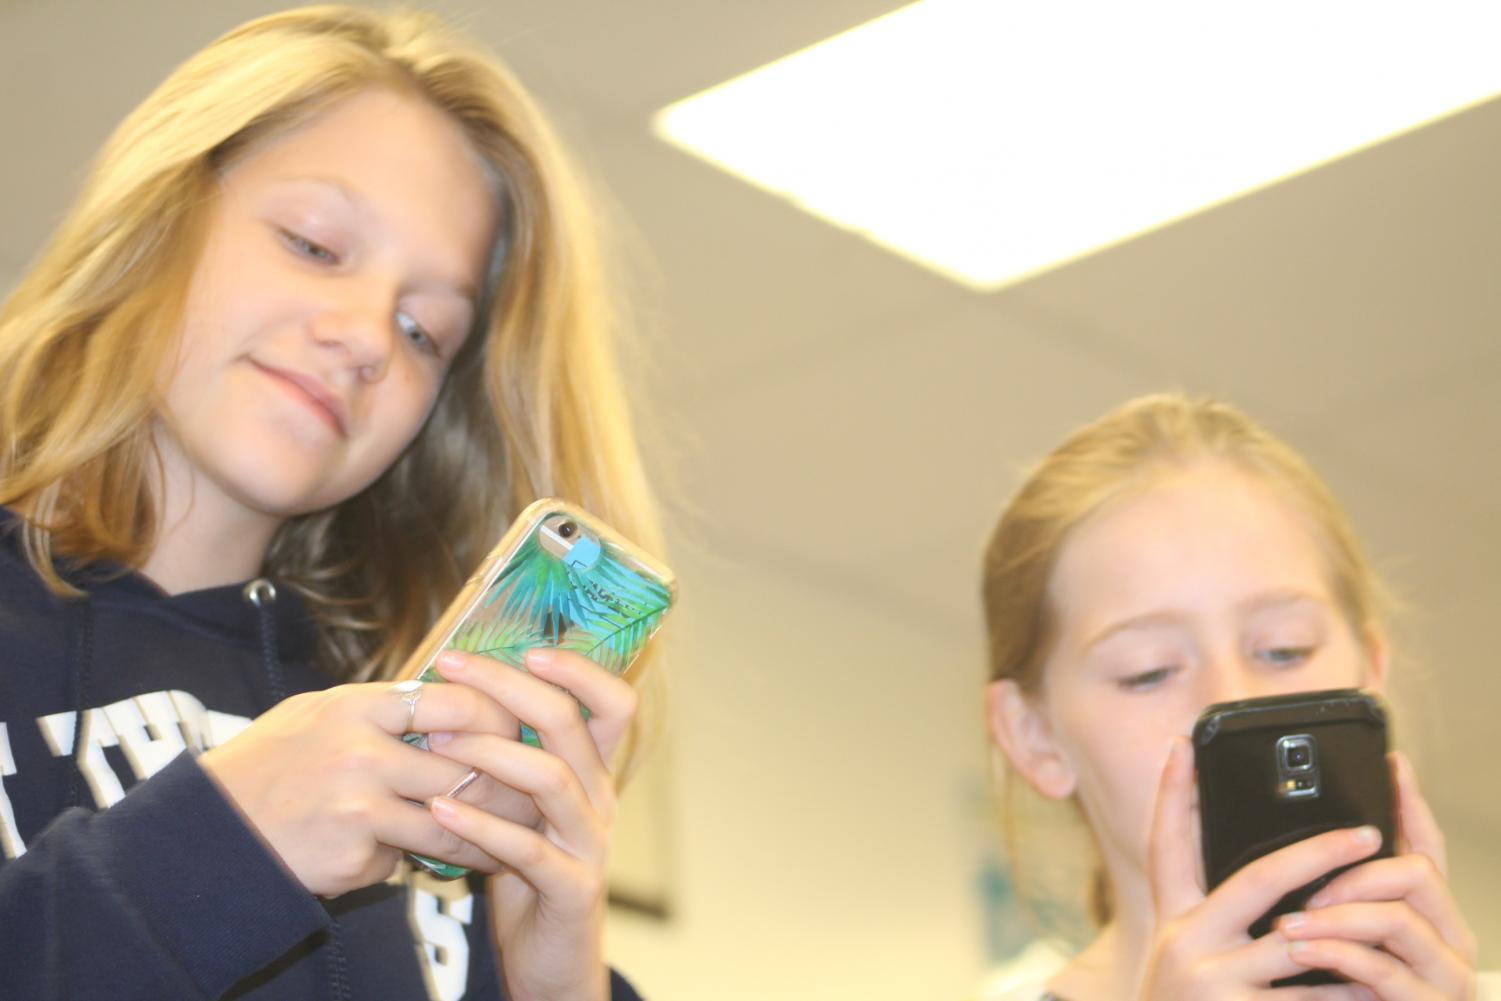 In this photo two girls (Emma Ross and Hannah McDonough) are texting instead of socializing with each other.